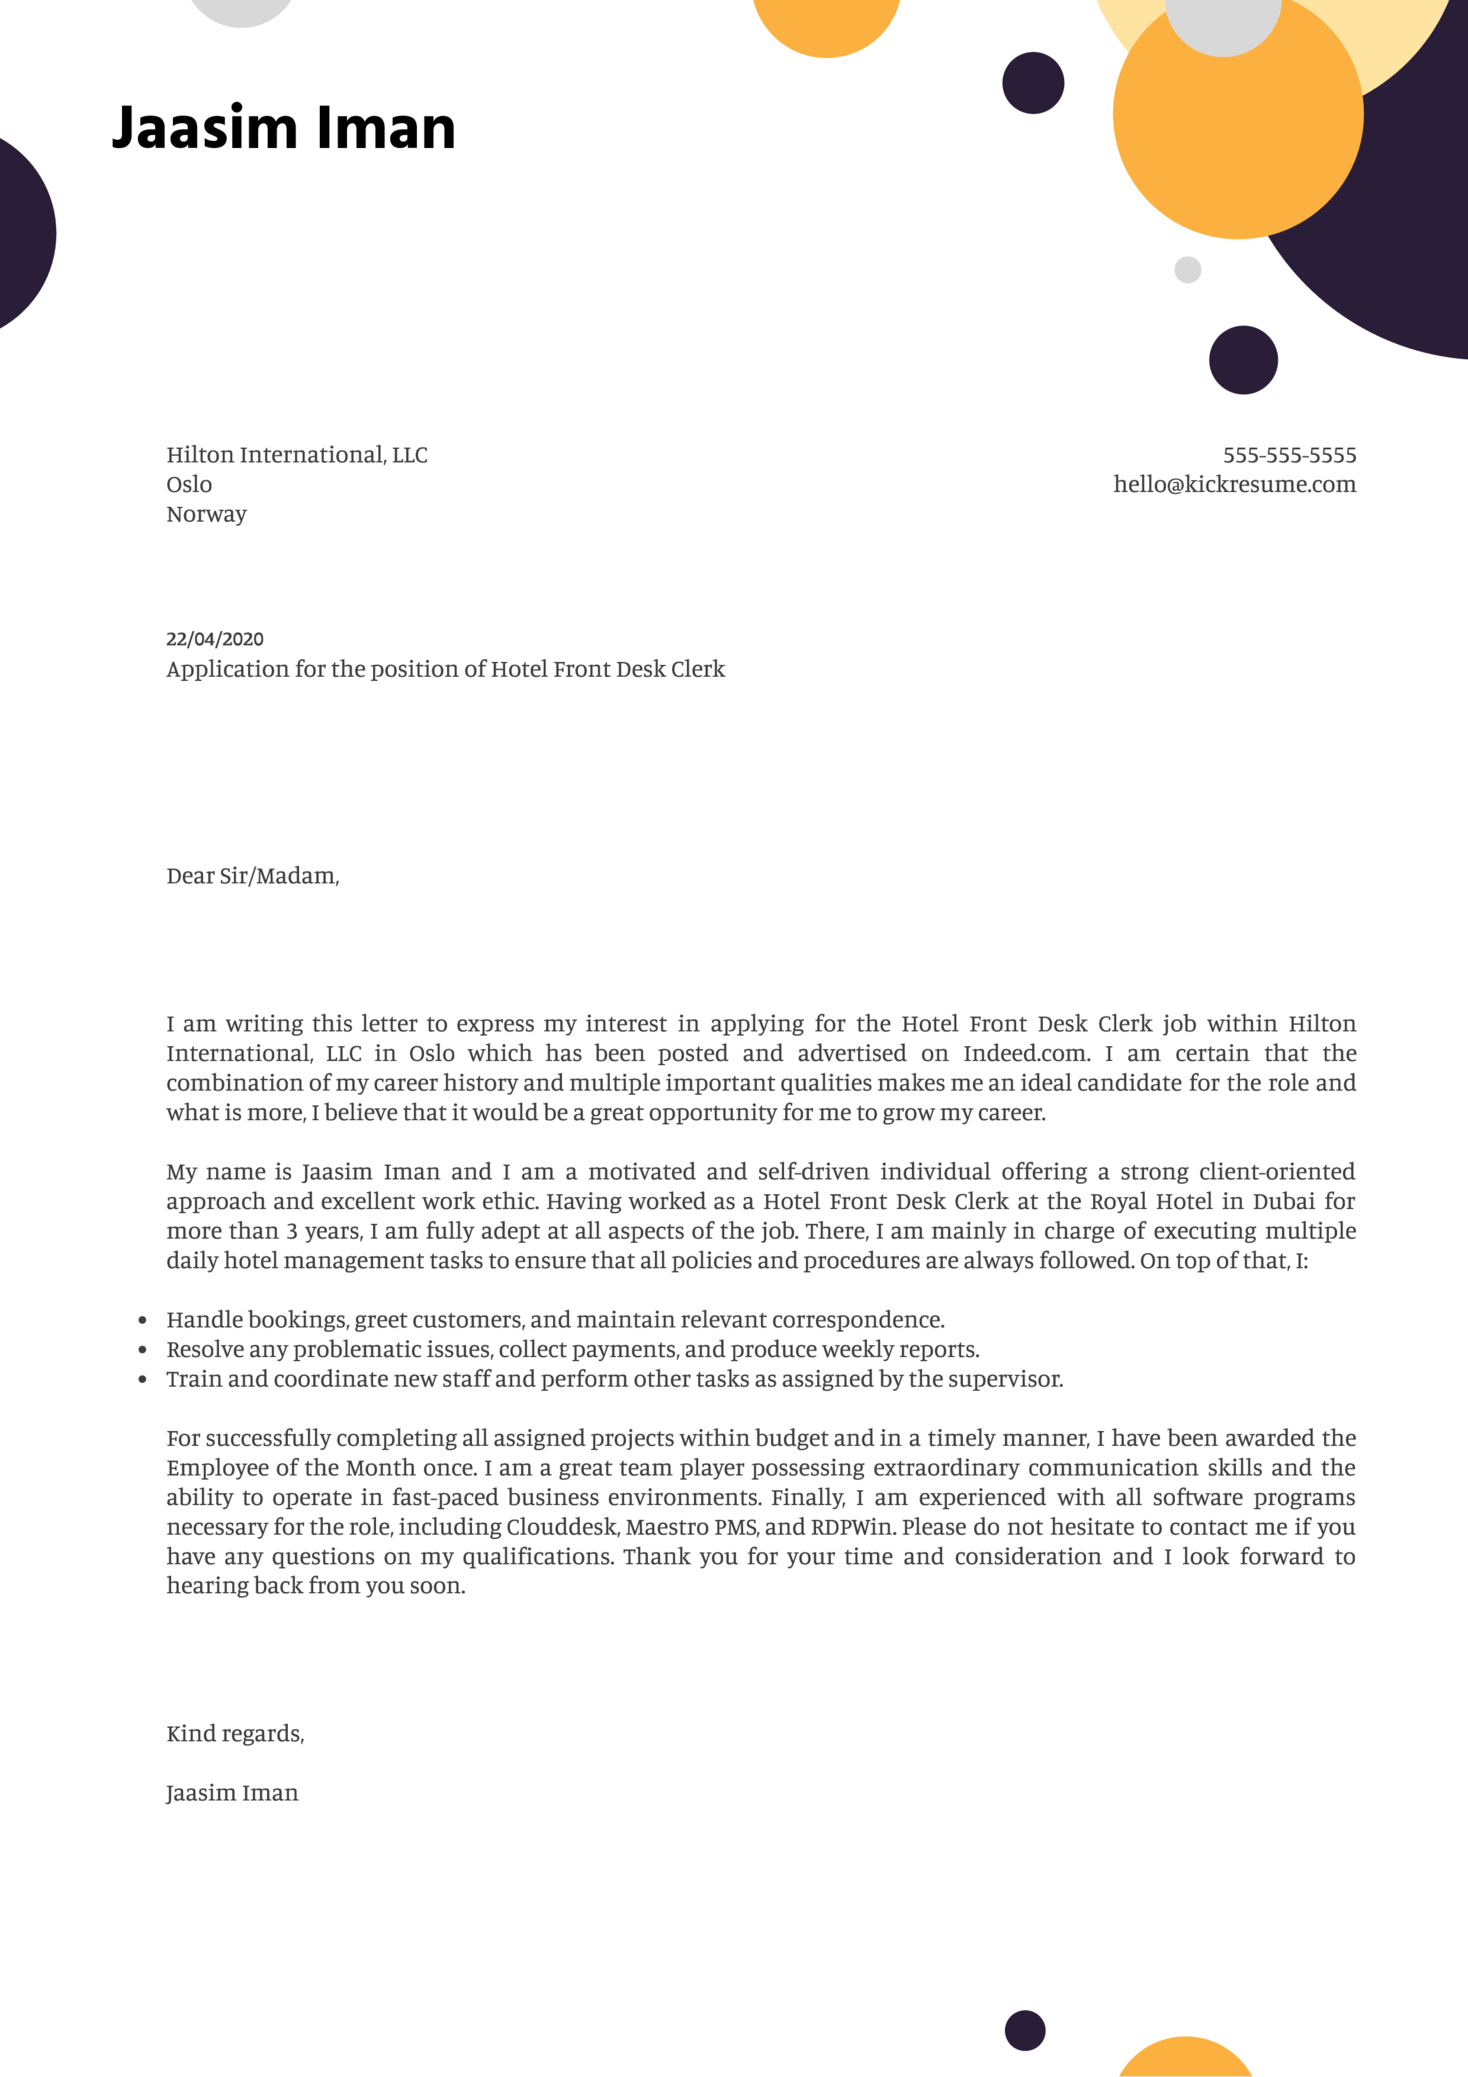 Receptionist Cover Letter Samples from s3-eu-west-1.amazonaws.com